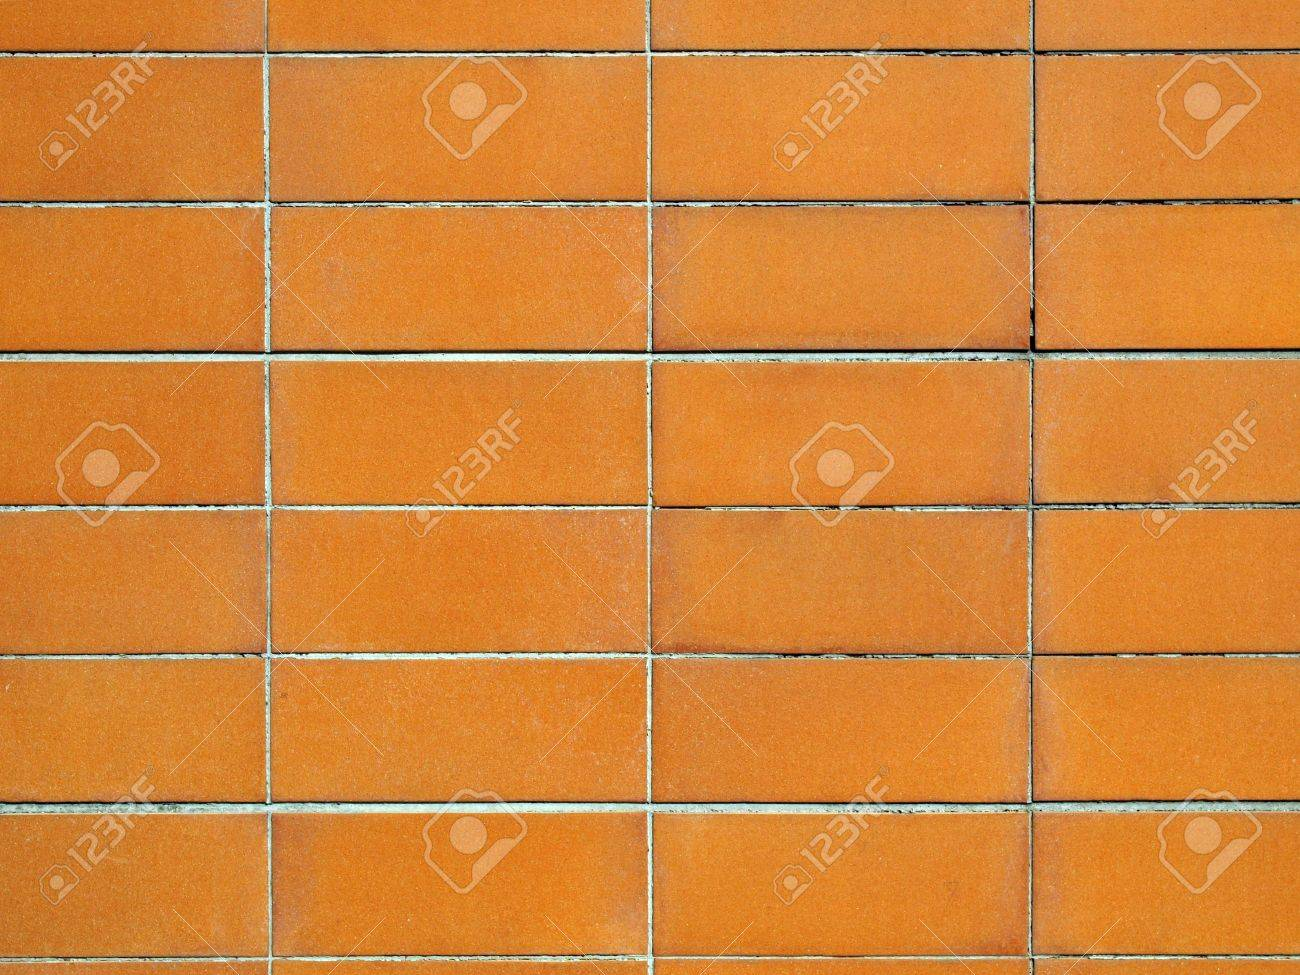 Orange terracotta ceramic tiles wall useful as background stock orange terracotta ceramic tiles wall useful as background stock photo 6027854 dailygadgetfo Image collections